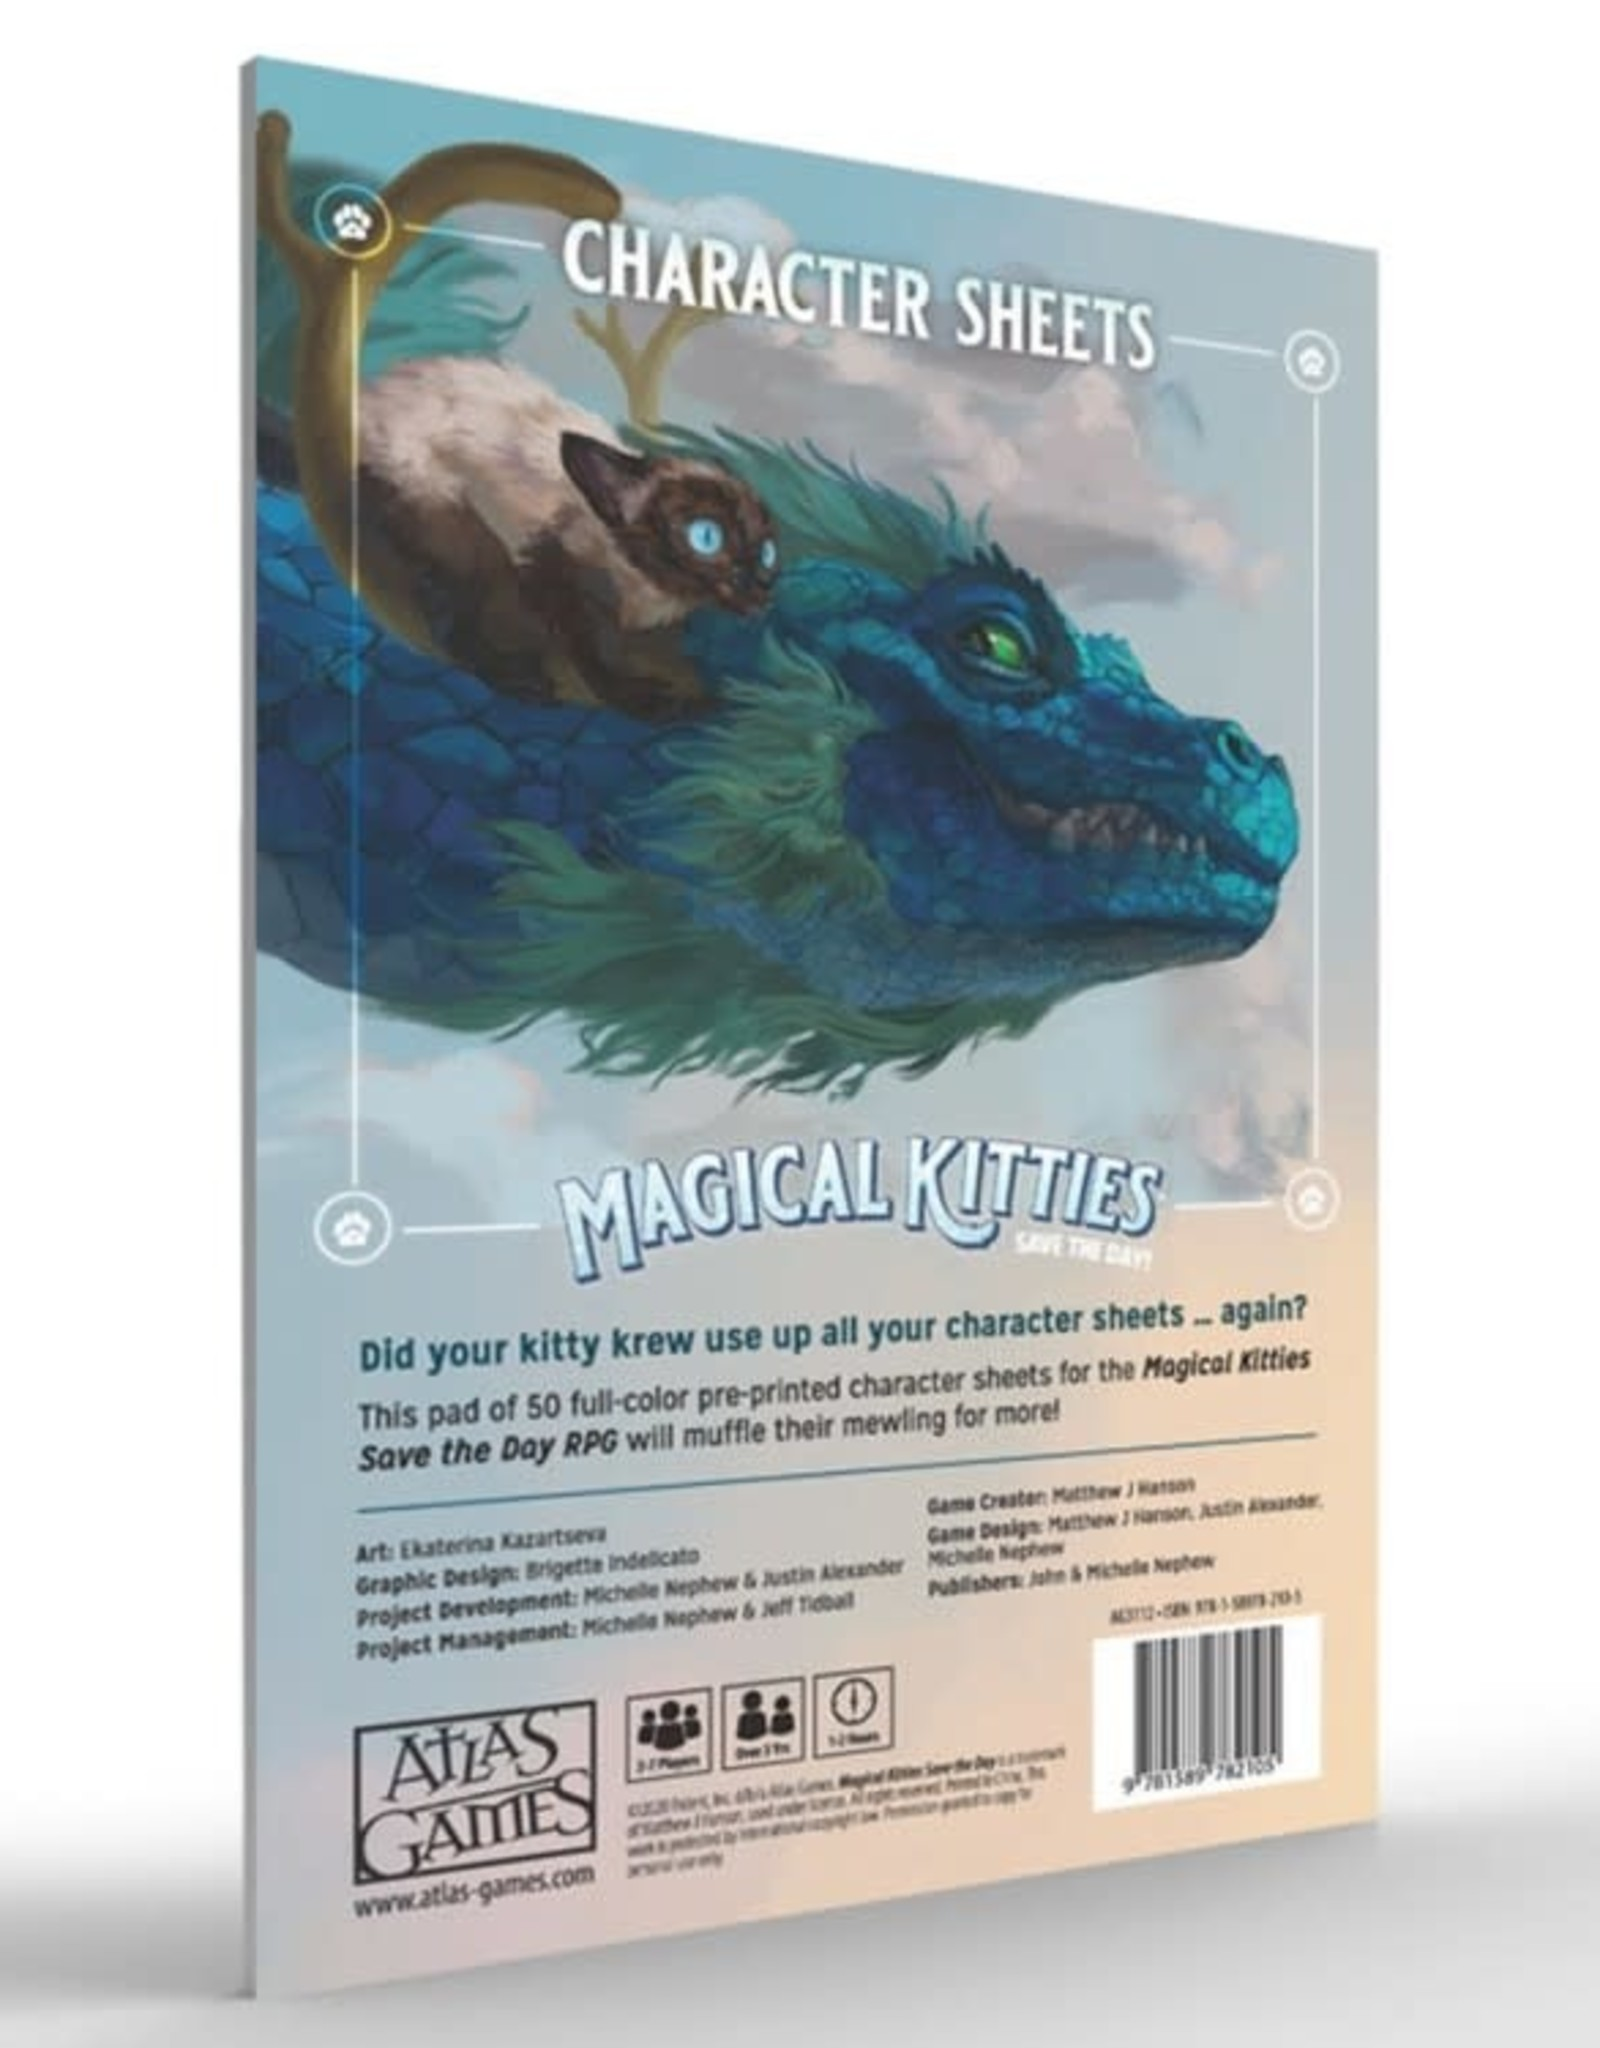 Atlas Games Magical Kitties Save the Day RPG: Kitty Character Sheets